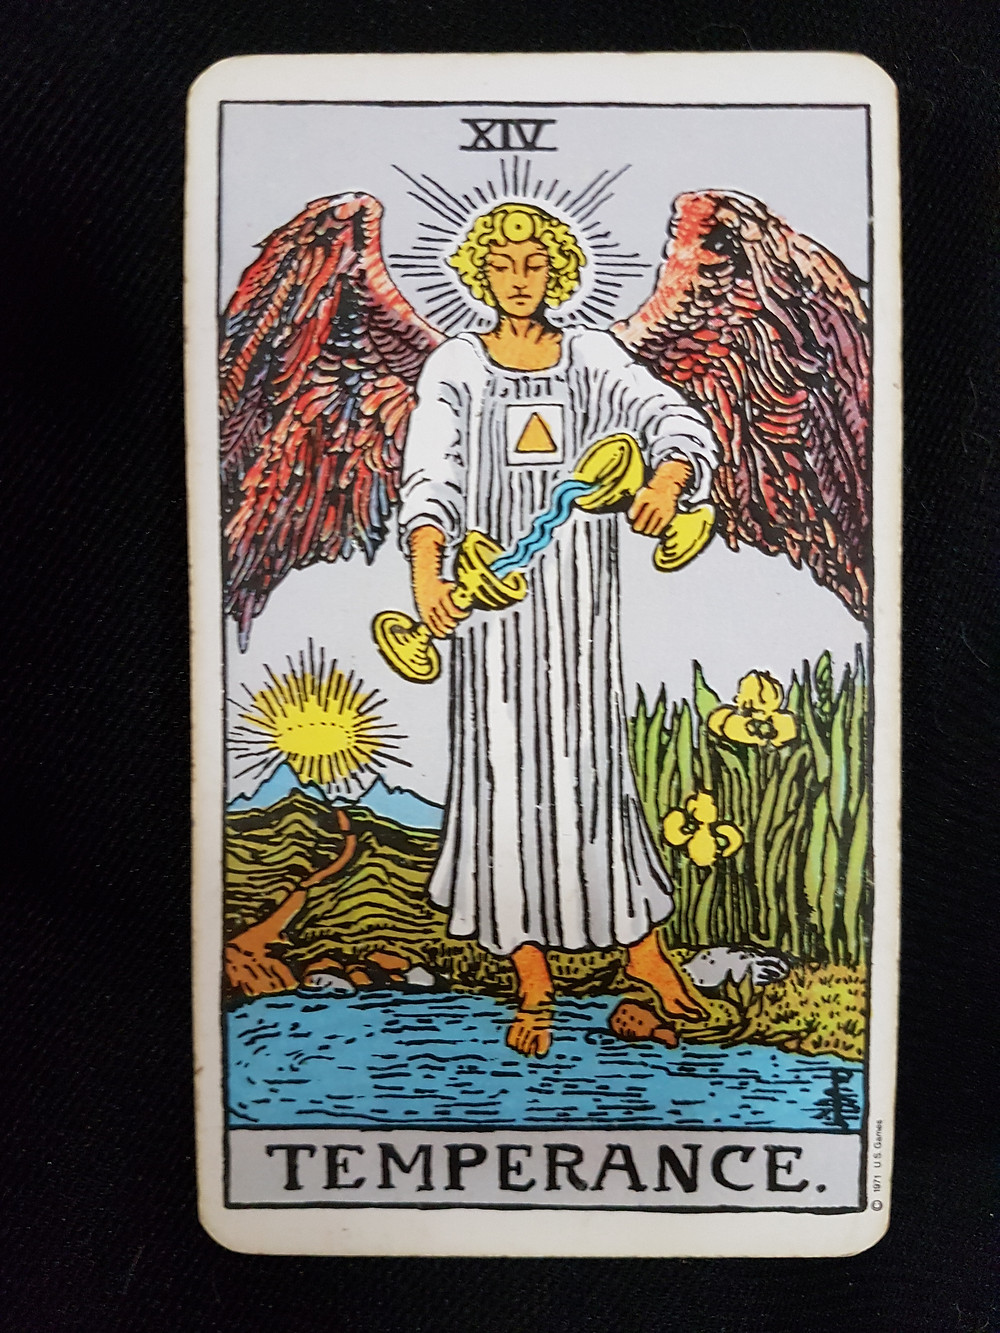 The Termperance Card 14/5 - lynsreadings.com